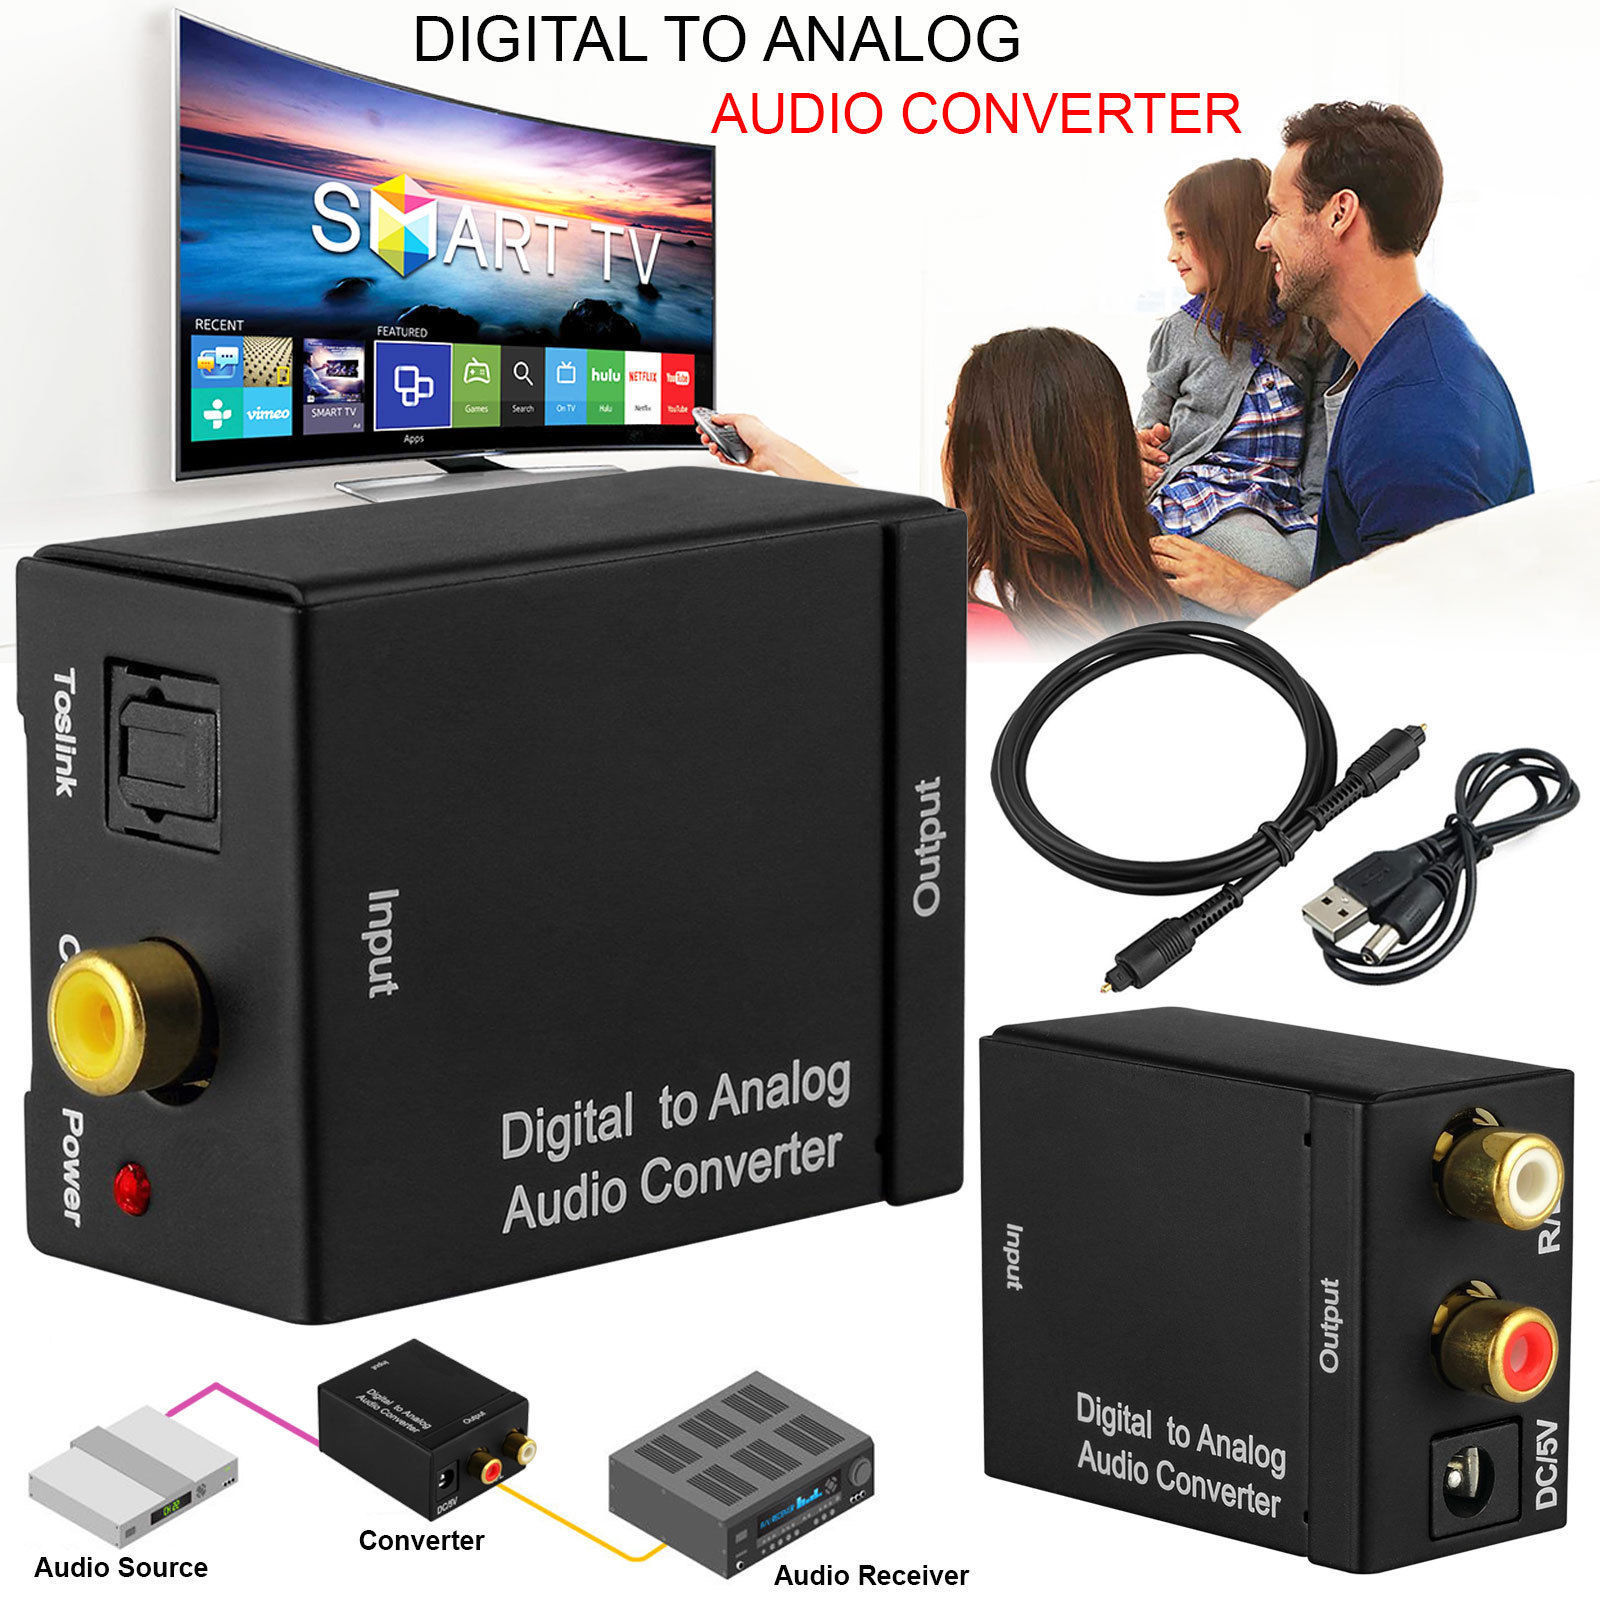 Toslink Signal Optical Coaxial Digital to og Audio Converter ... on audio cable, audio editing software, audio coding 3, audio files, audio playlist, audio maker,